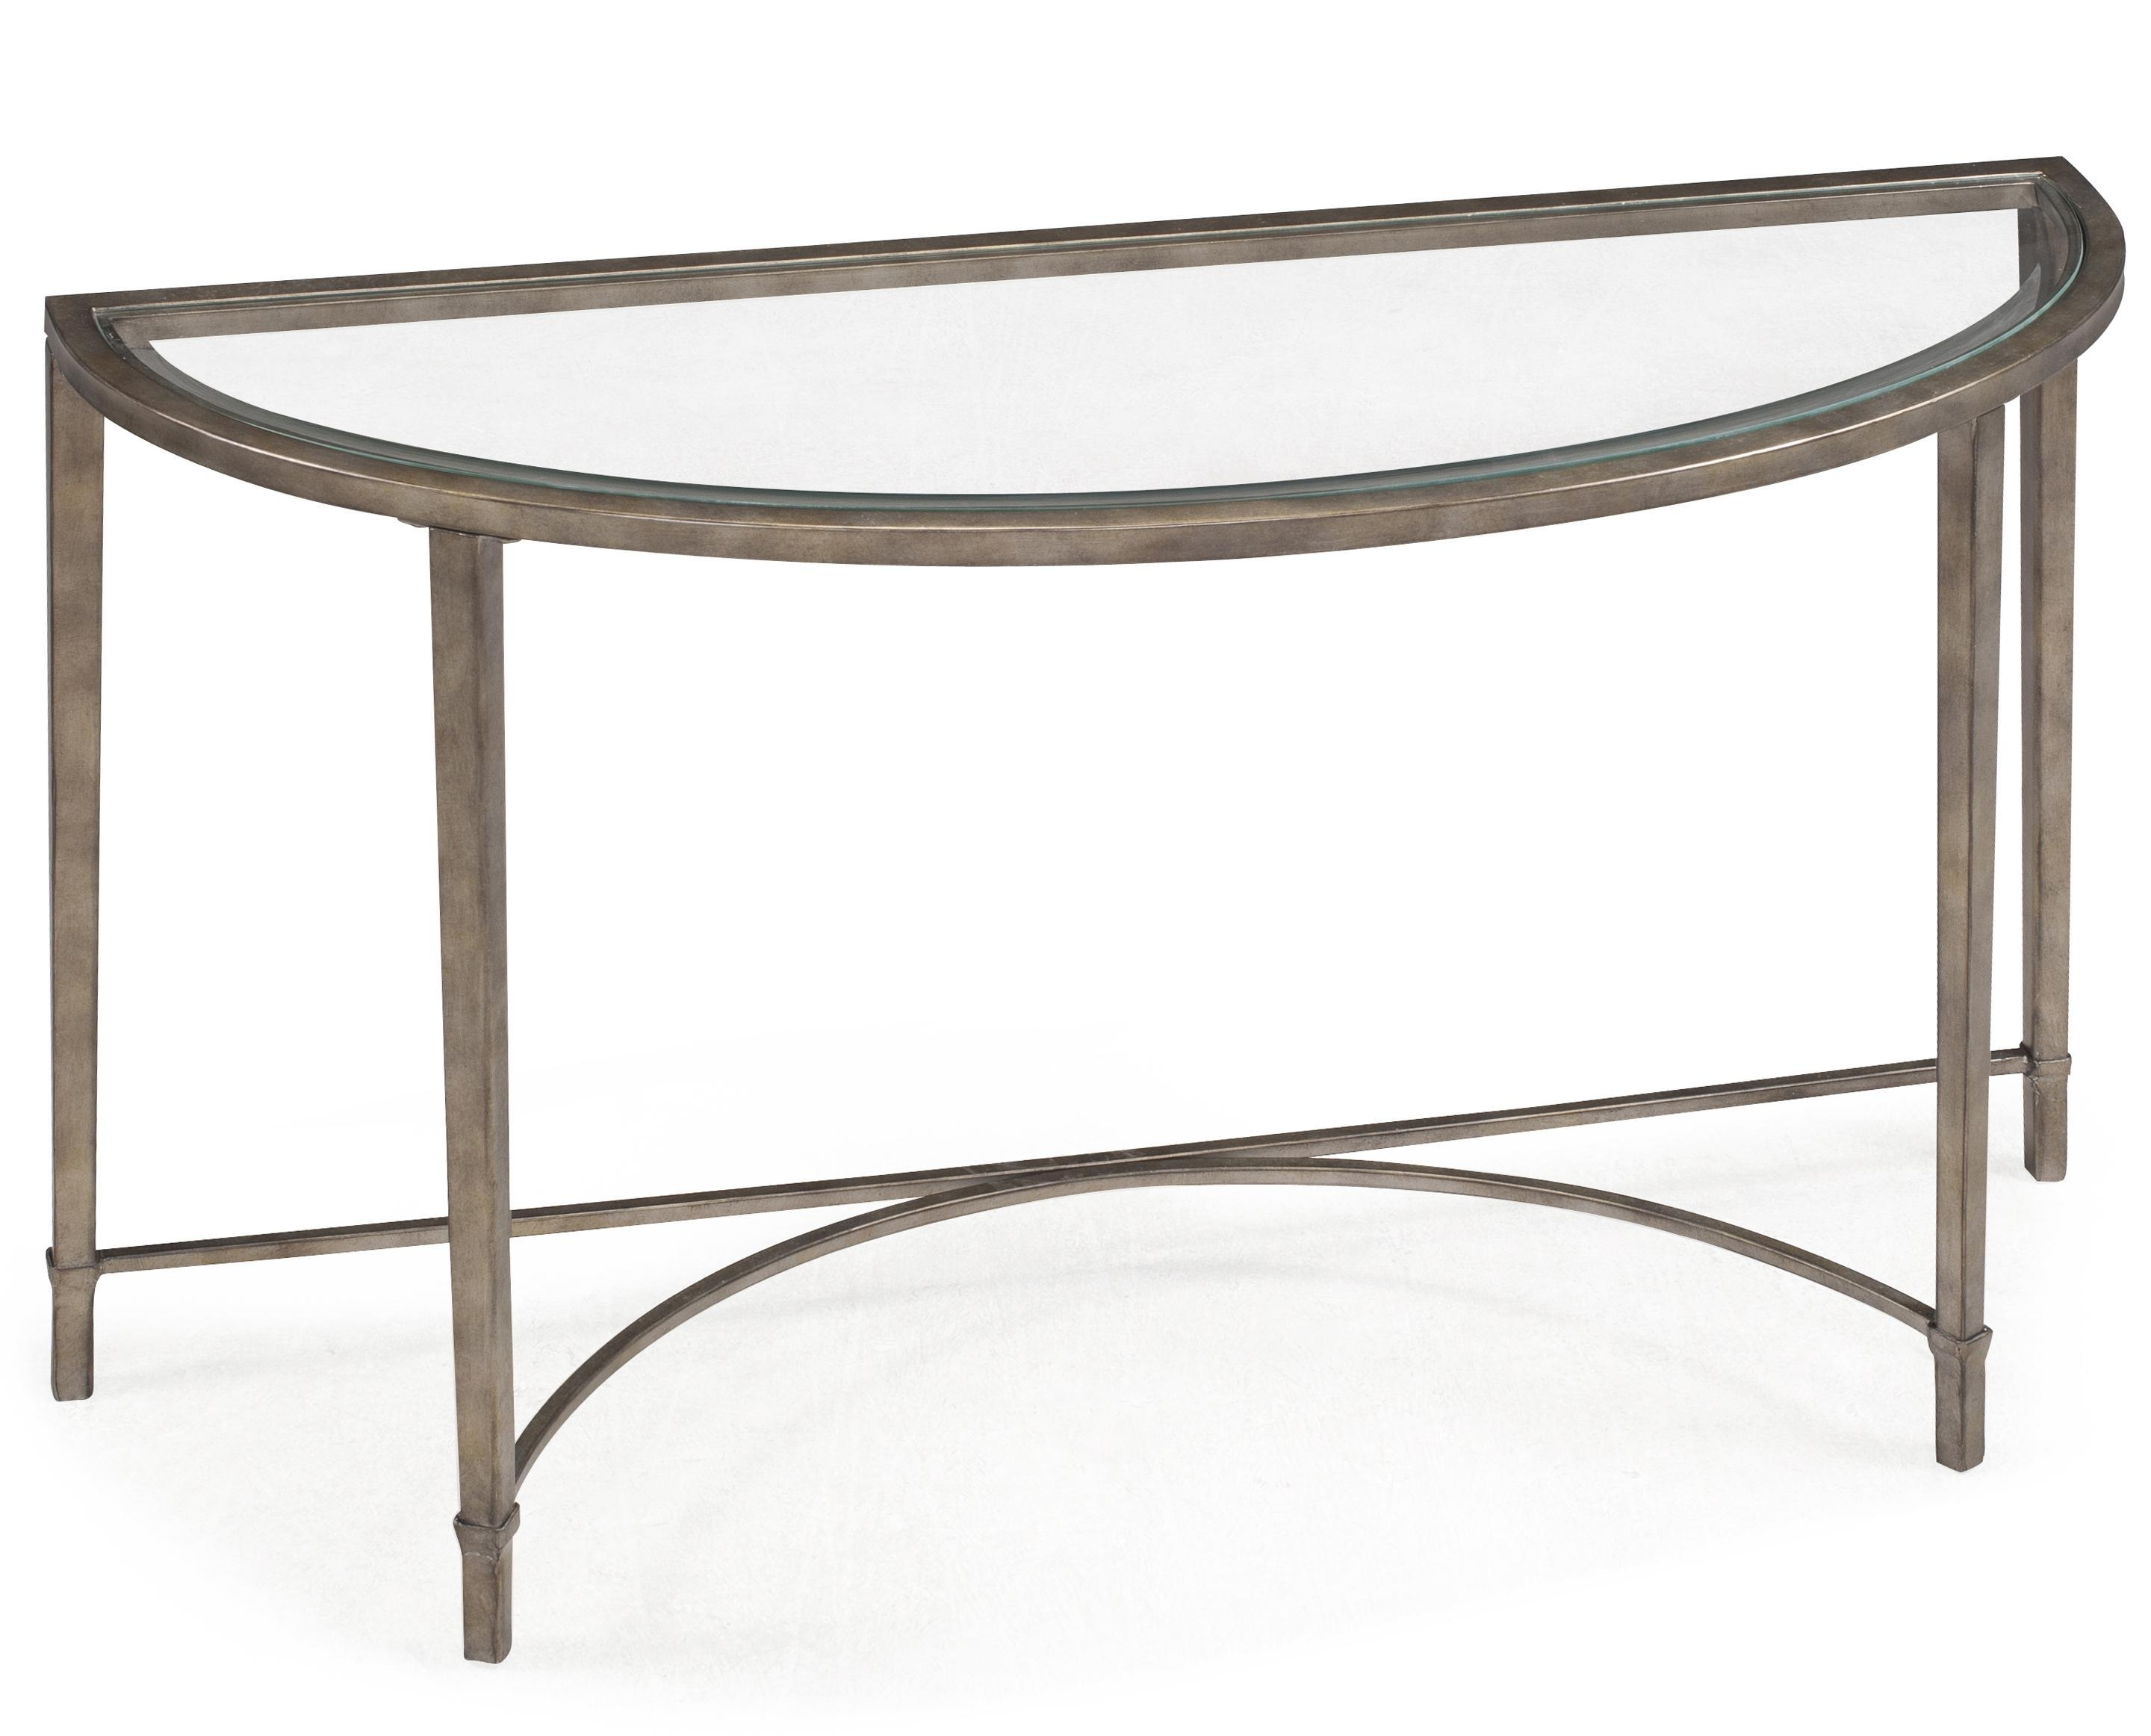 Metal And Glass Demilune Sofa Tablemagnussen Home | Wolf And Pertaining To Metal Glass Sofa Tables (View 8 of 22)